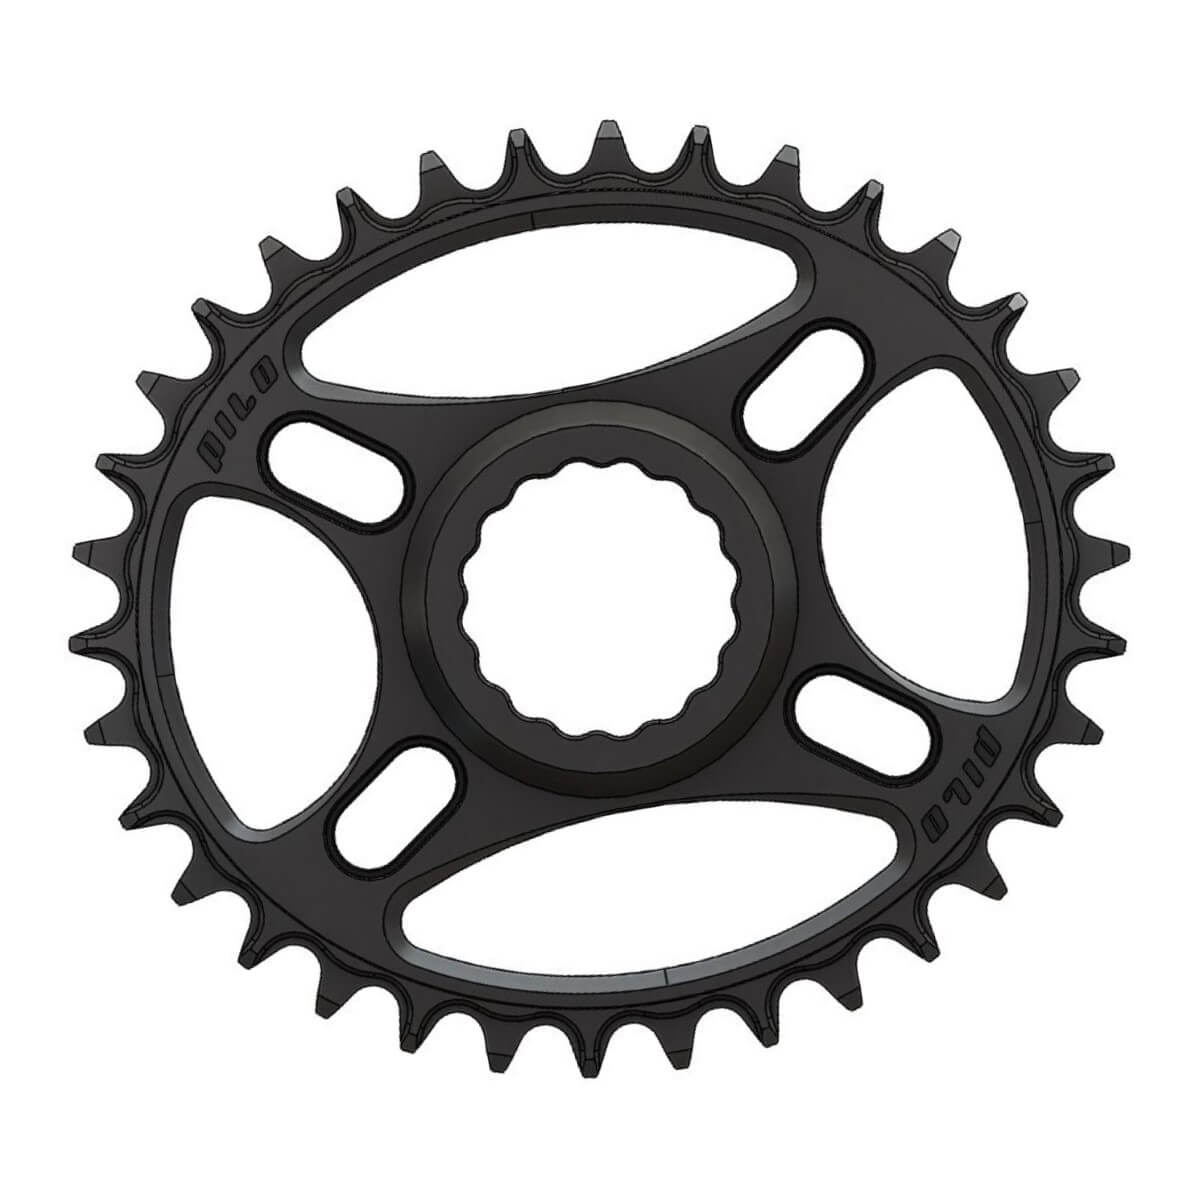 C27 Pilo Chainring Elliptic Narrow Wide 34T for Race Face direct CINCH